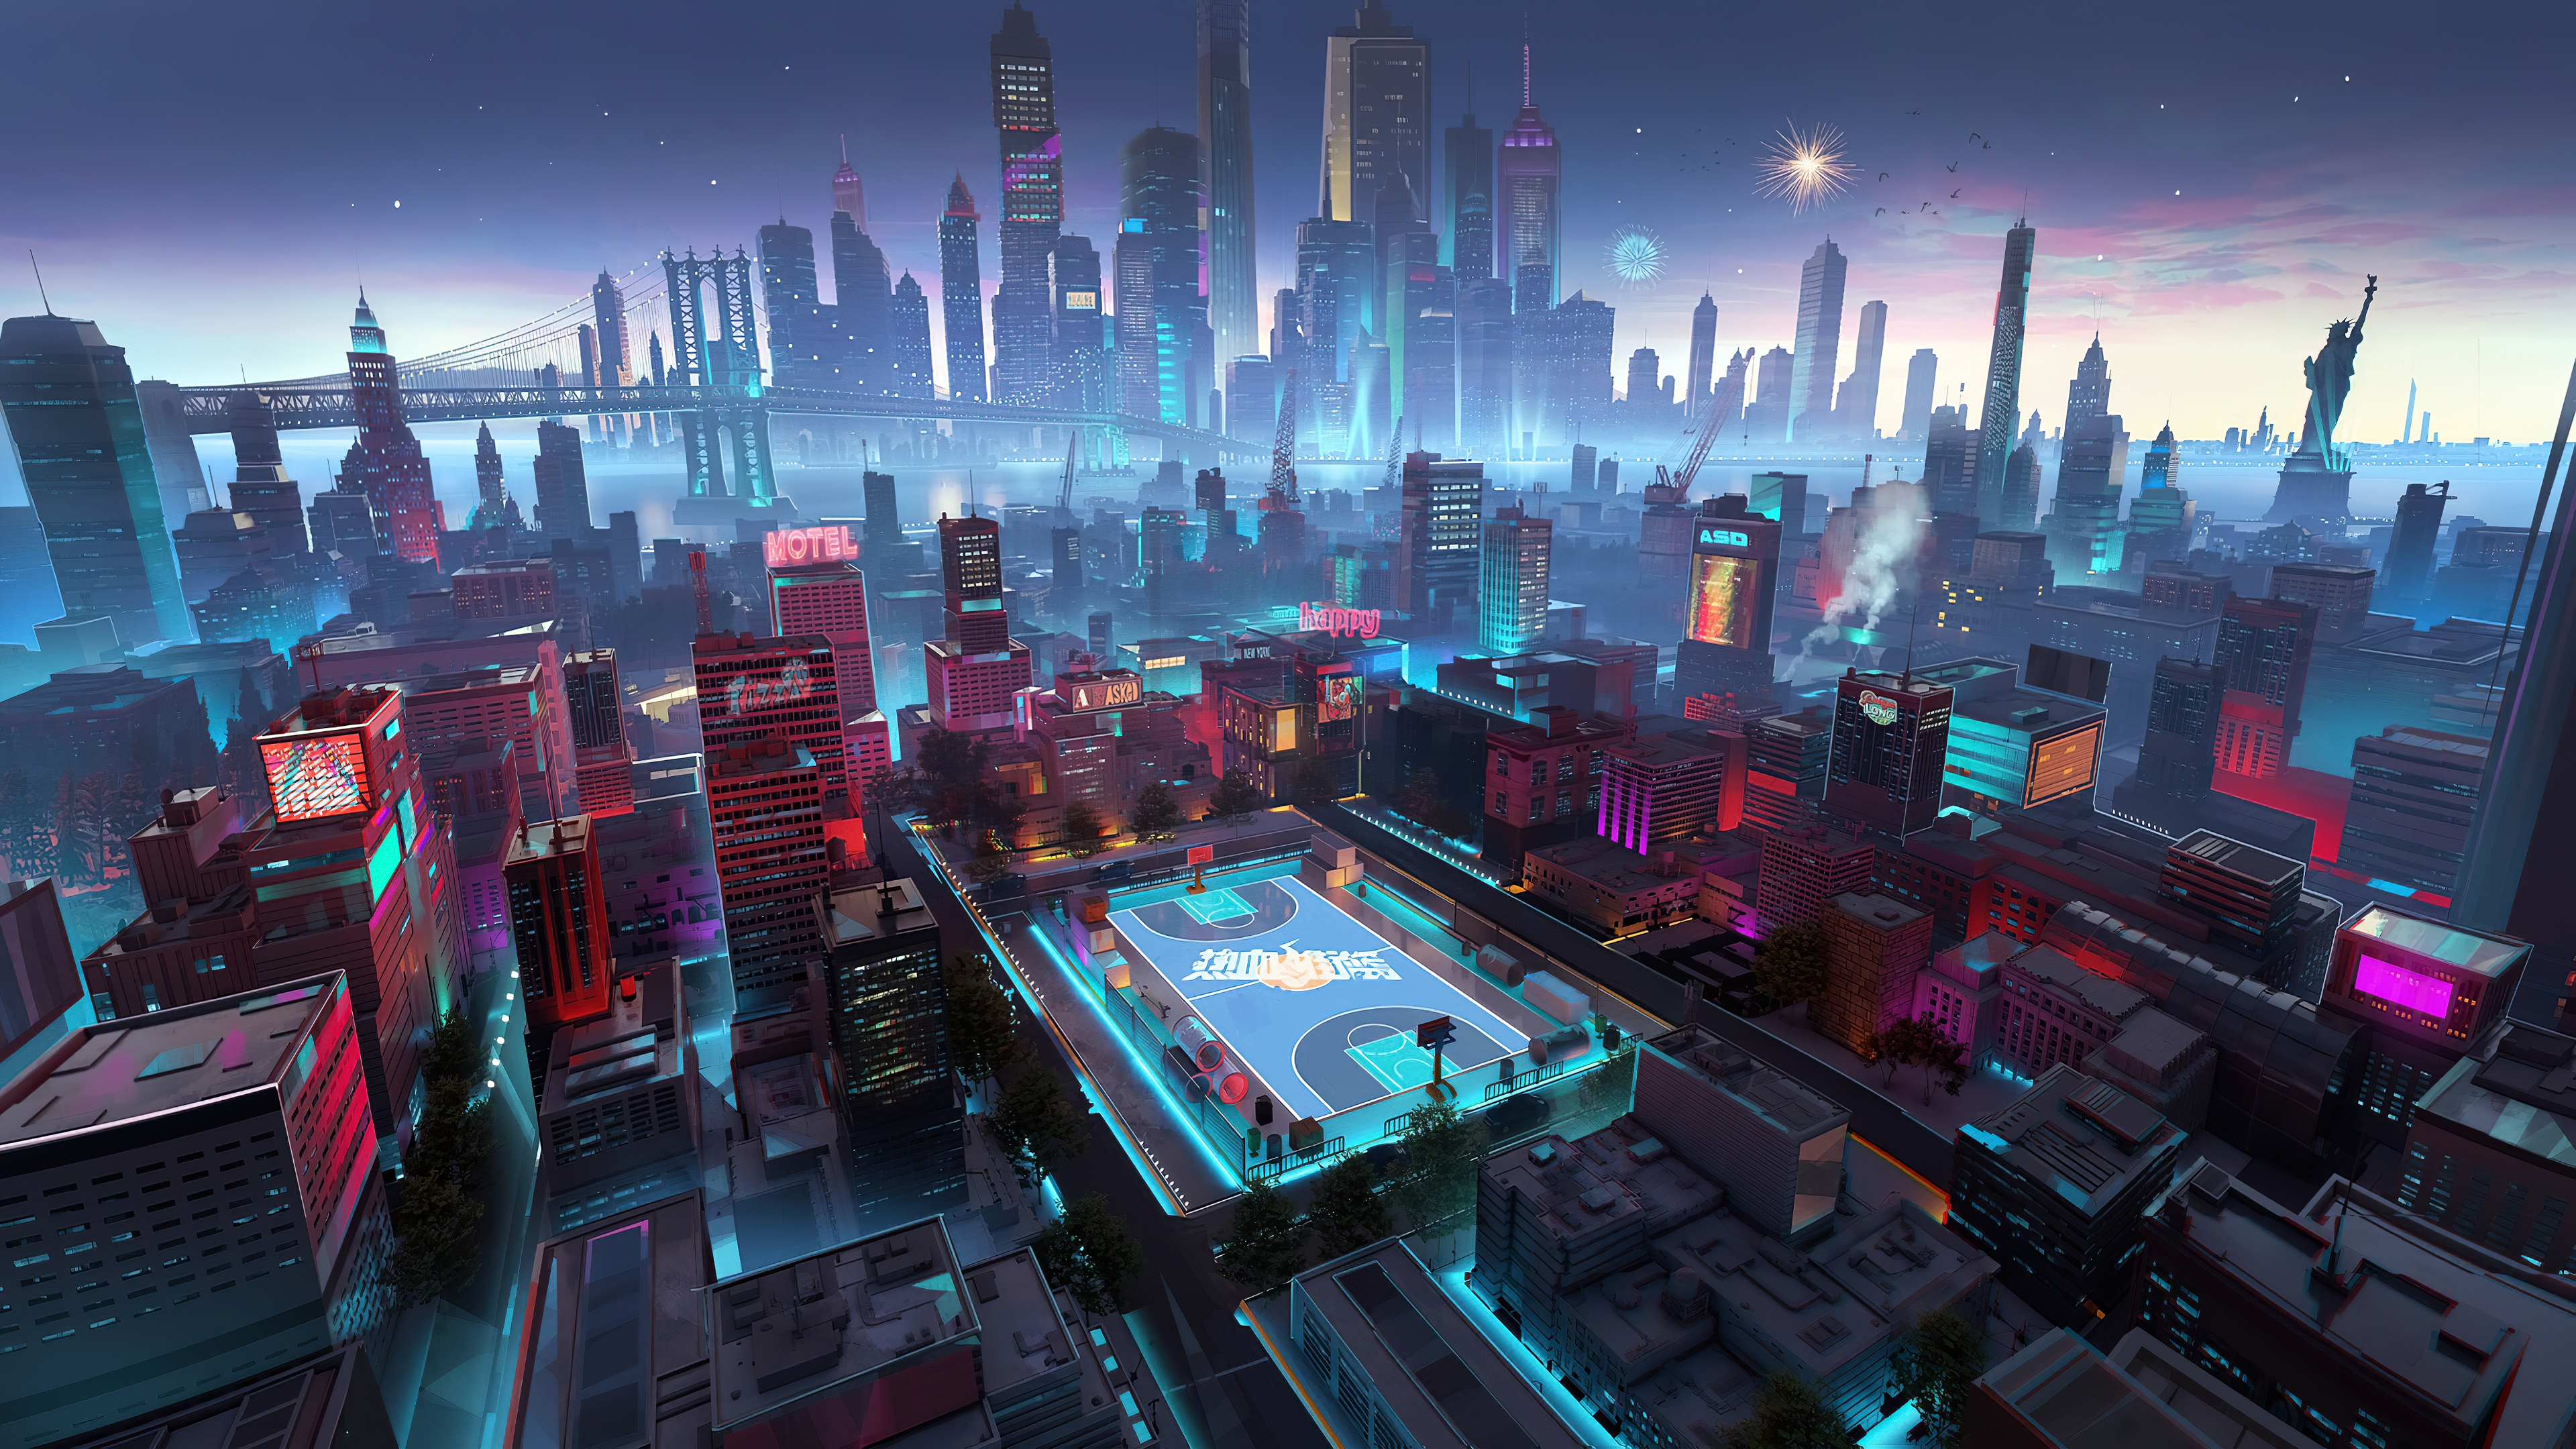 General 3840x2160 architecture building city cityscape bridge fantasy city skyscraper evening cyan basketball court rooftops fireworks Statue of Liberty mist neon cranes (machine)